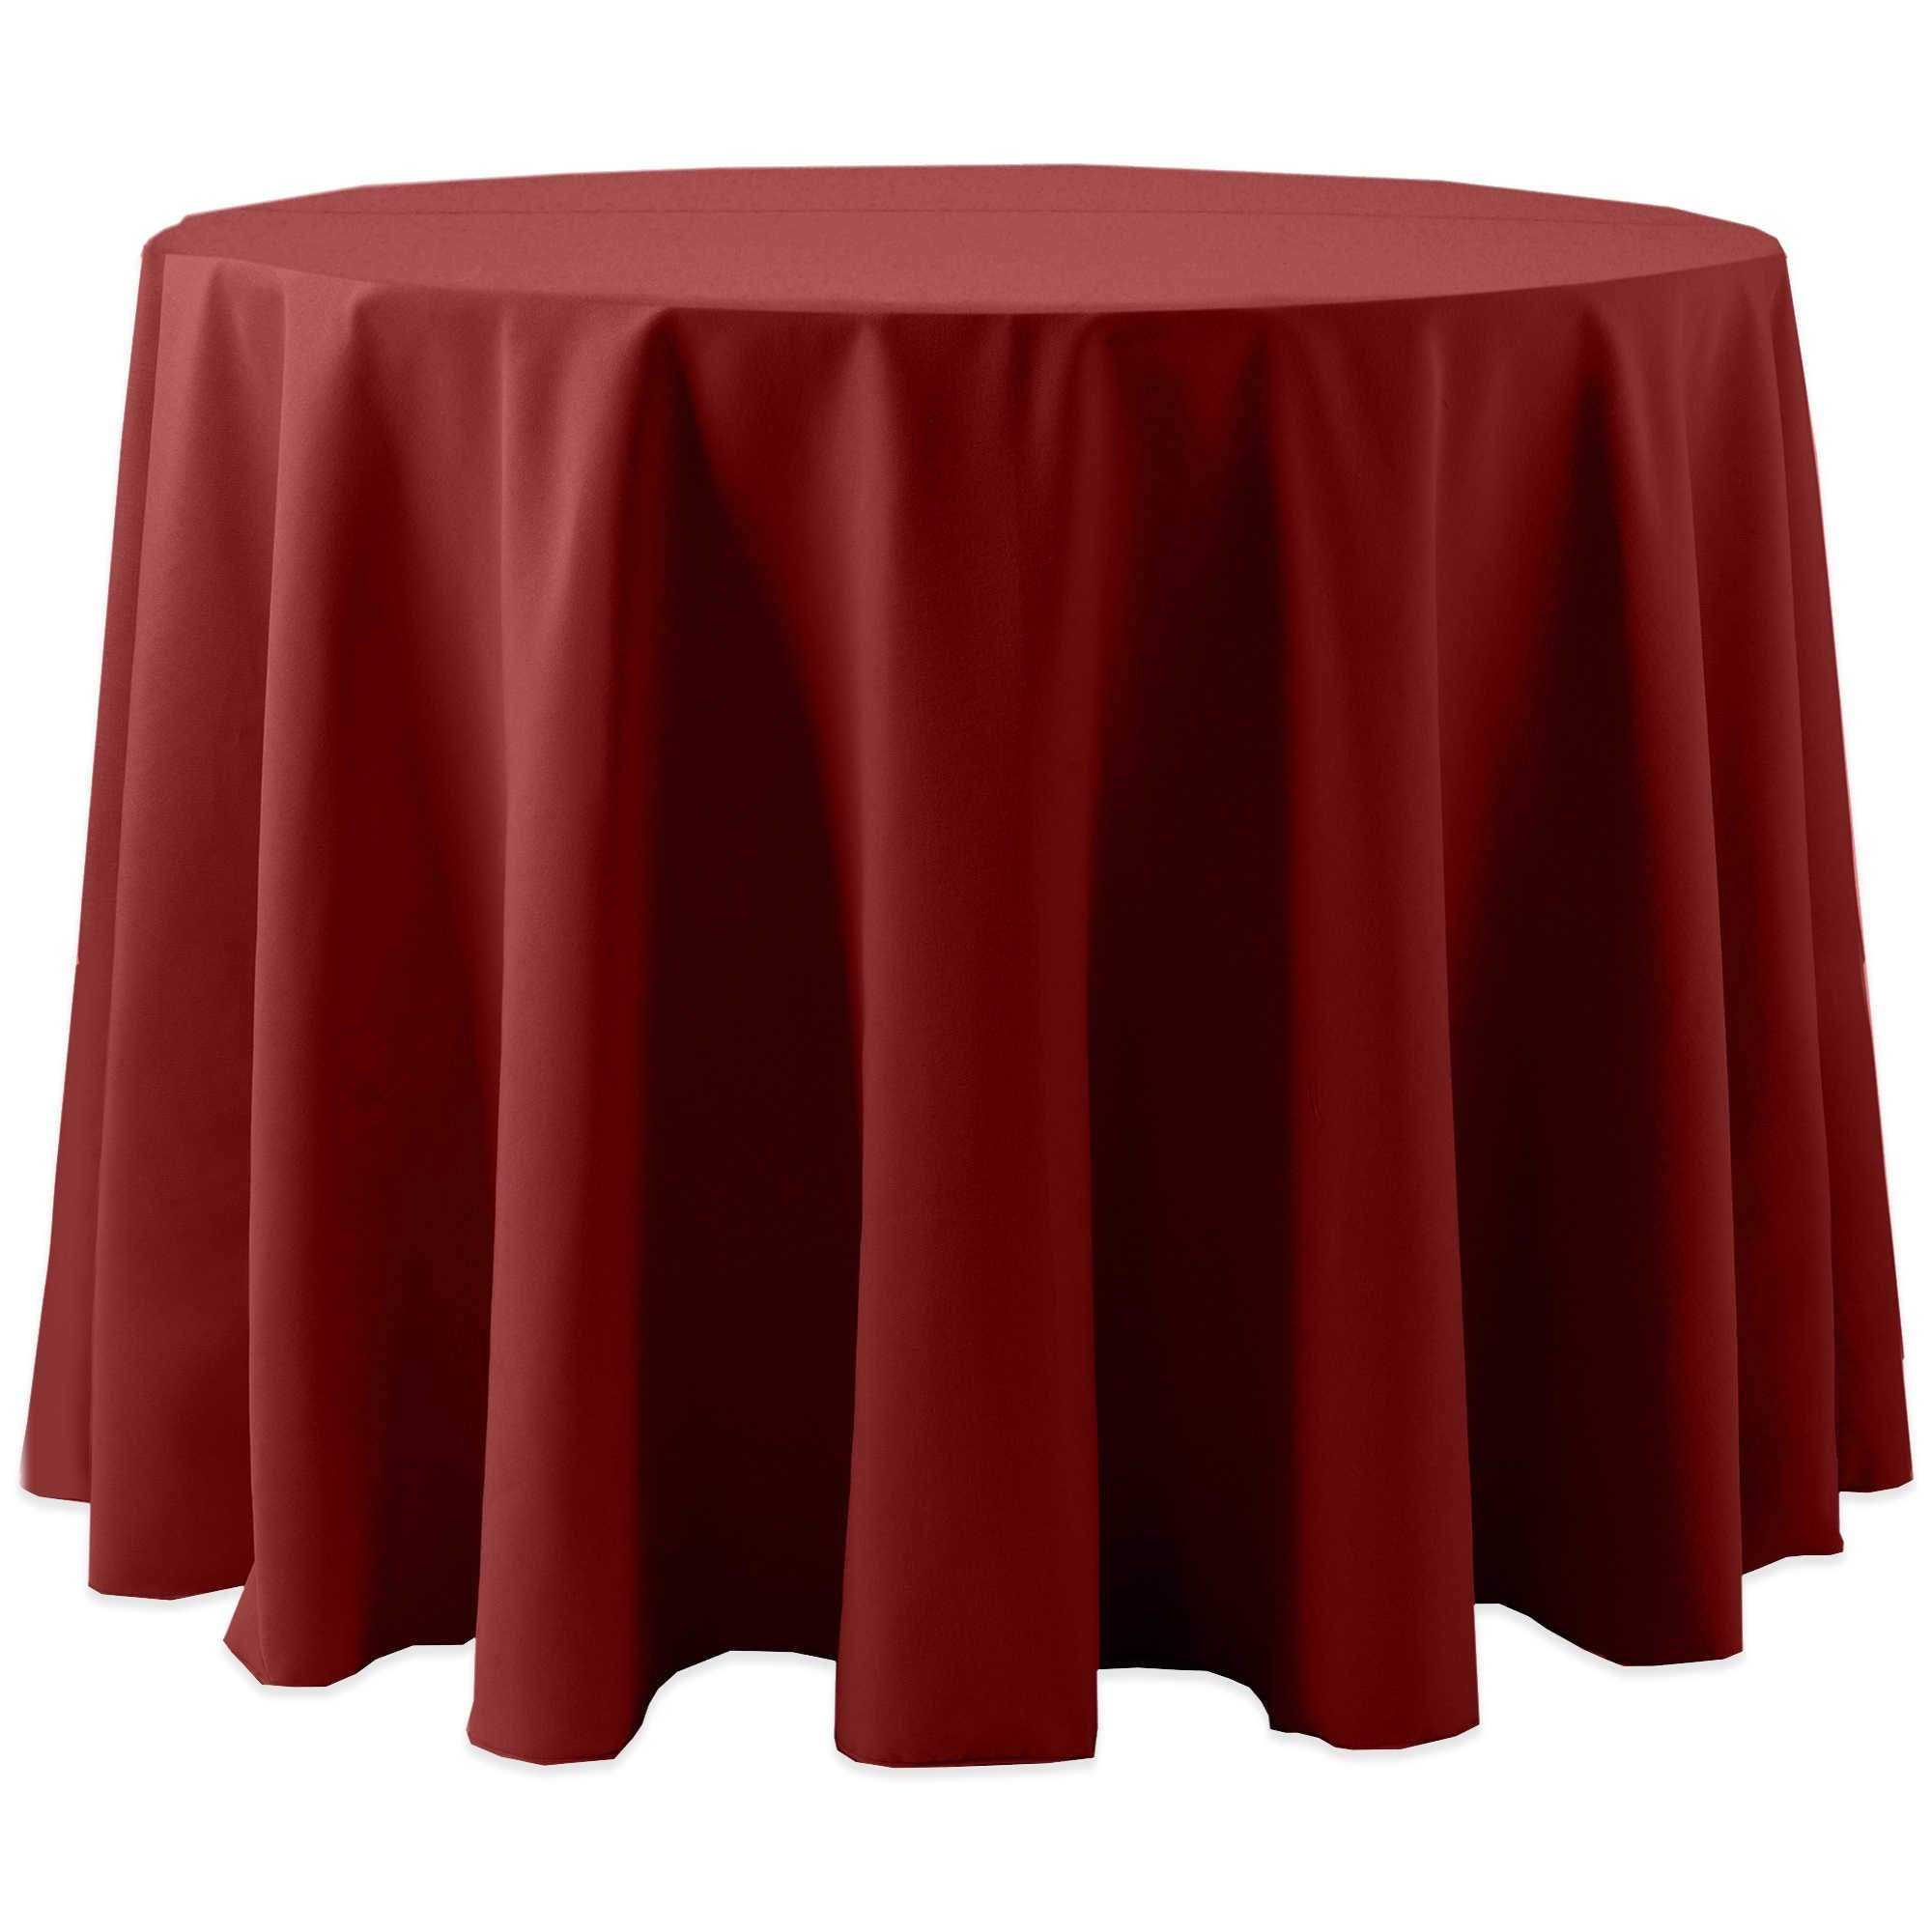 Ultimate Textile -2 Pack- Cotton-Feel 60-Inch Round Tablecloth - for Wedding and Banquet, Hotel or Home Fine Dining use, Brick Rust Red